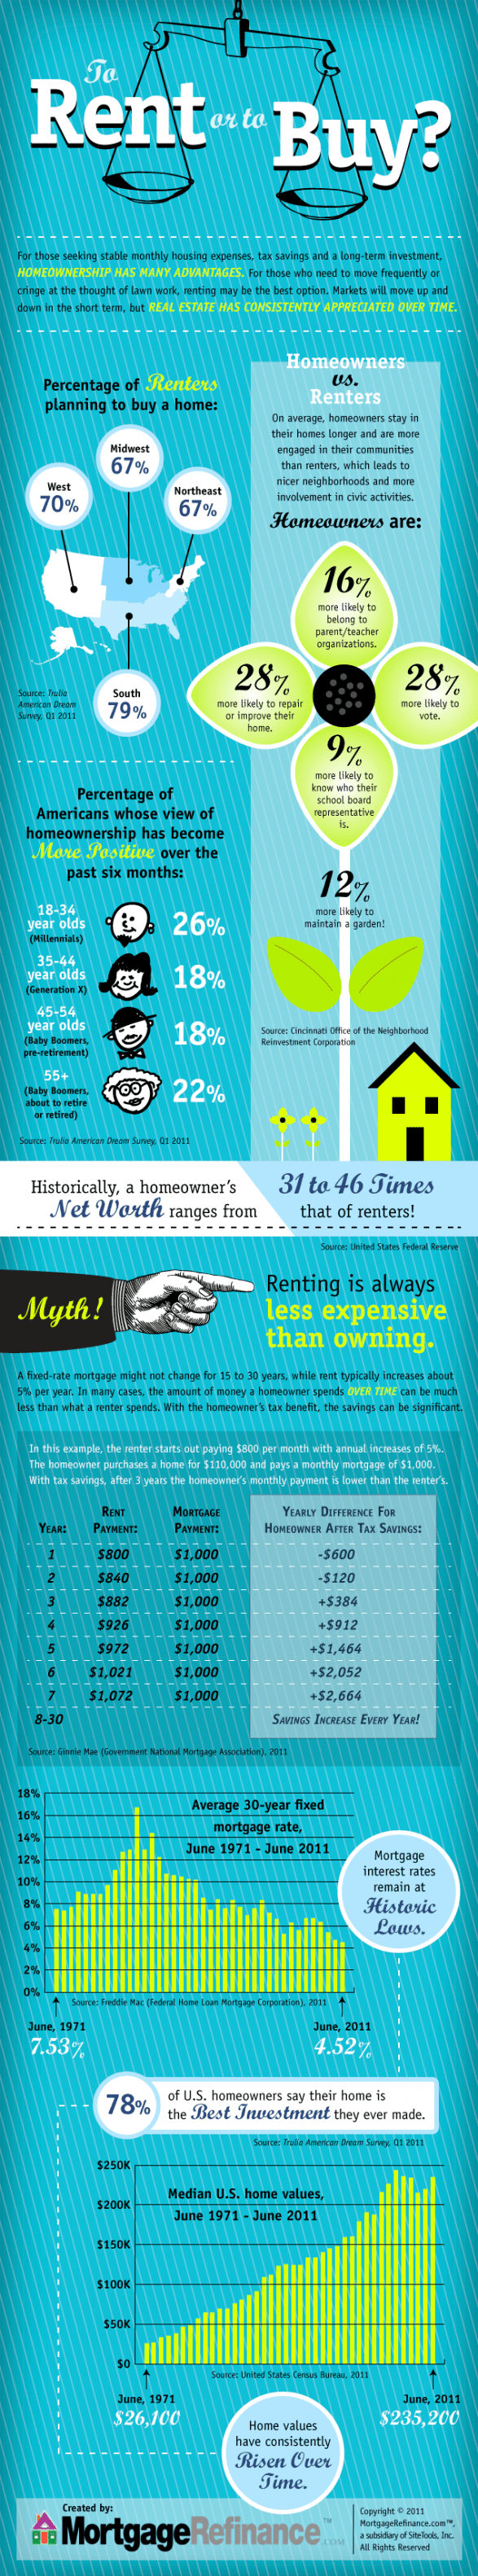 renting vs buying a home in colorado springs